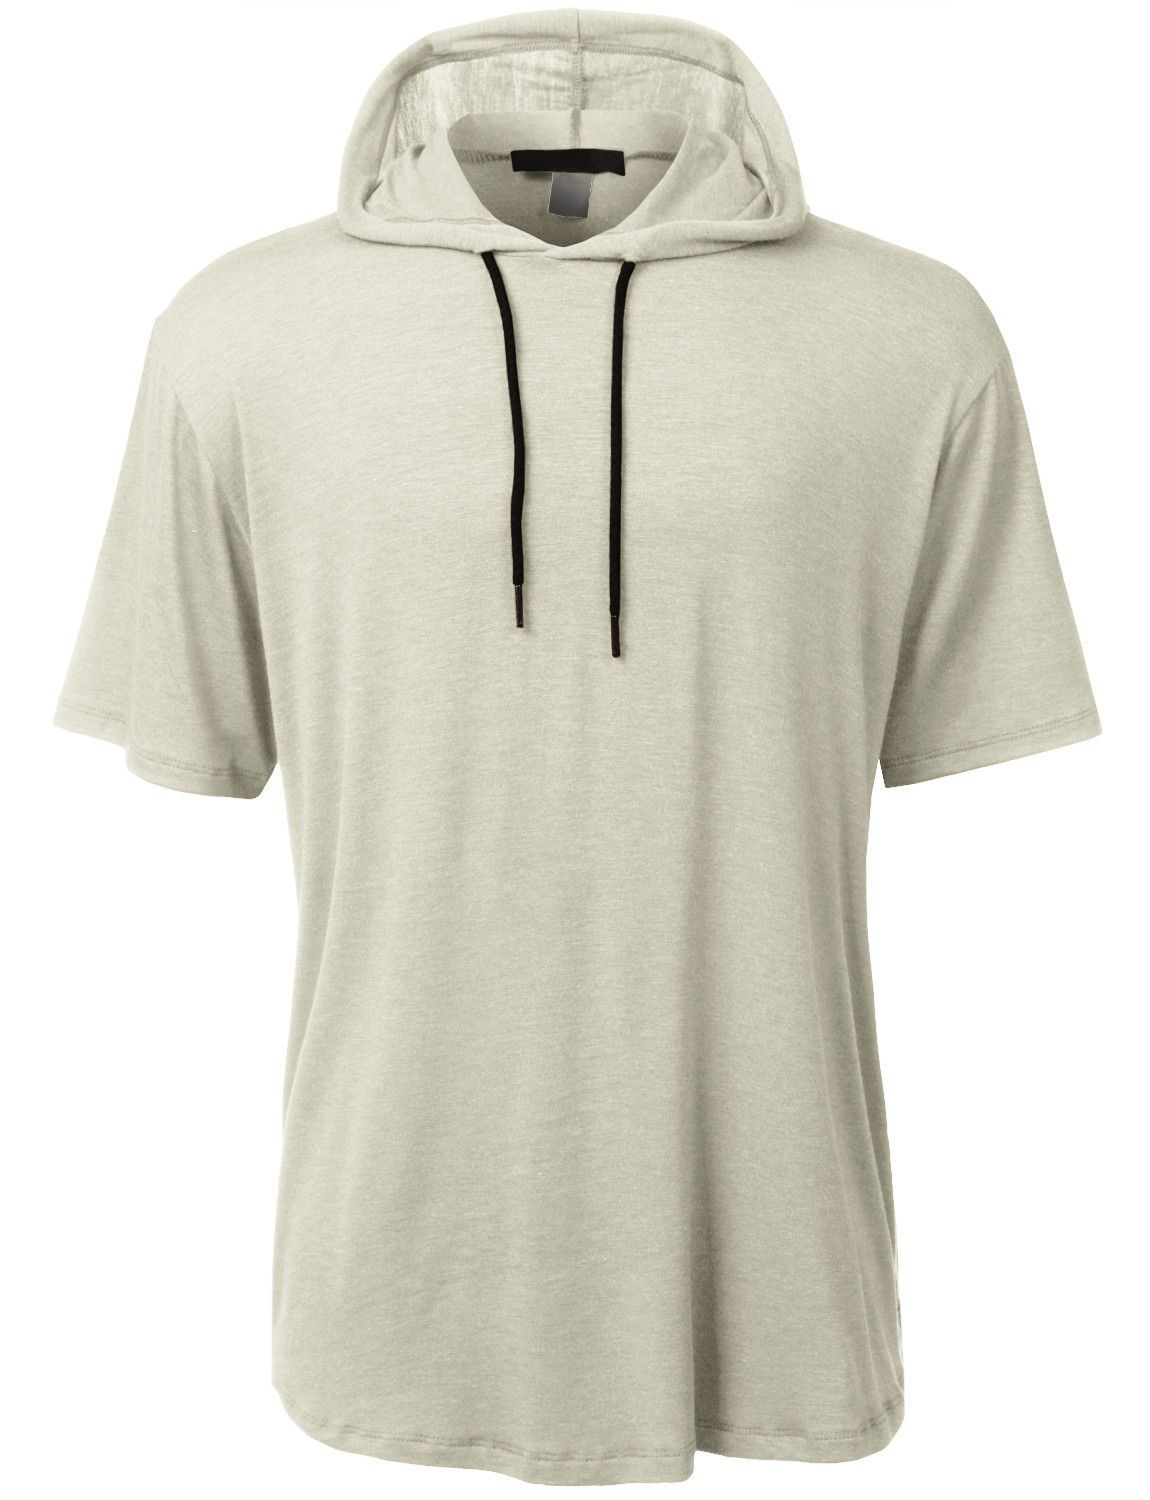 Mens Lightweight Hipster Short Sleeve Hoodie Shirt (CLEARANCE ...